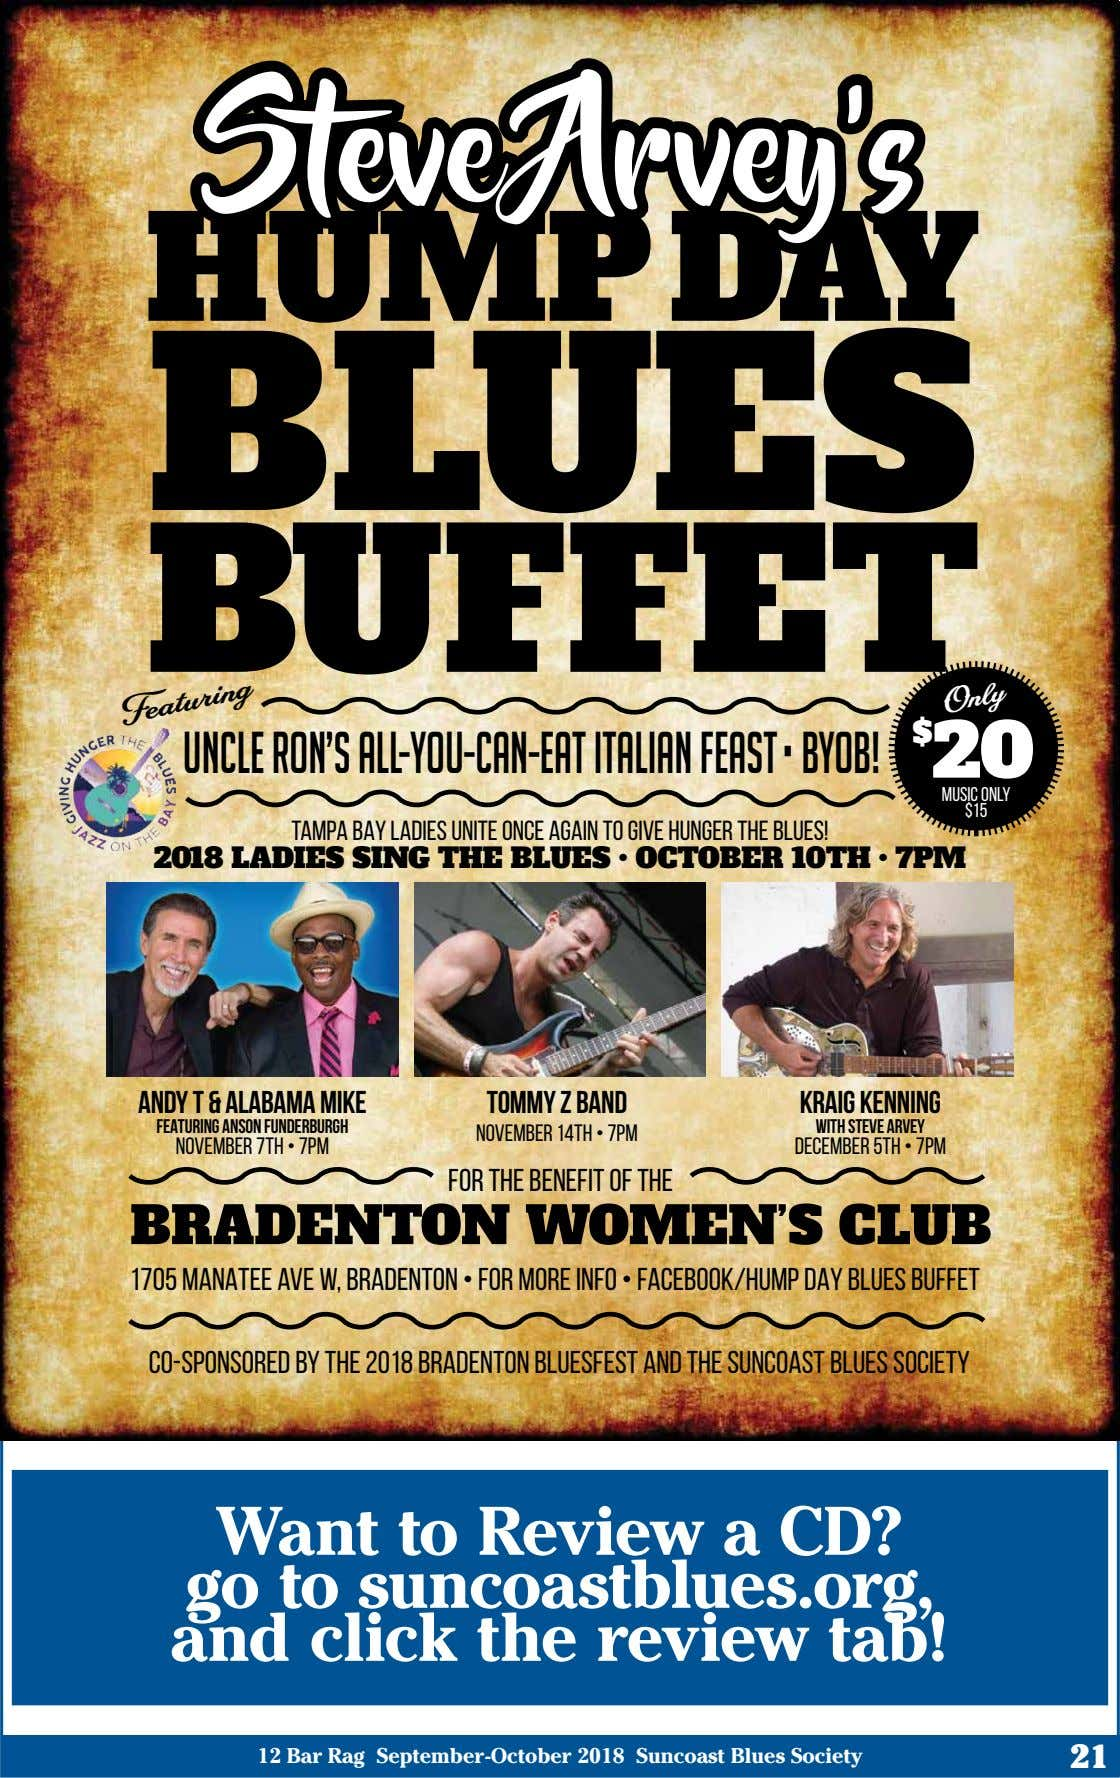 Steve Arvey's HUMP DAY BLUES BUFFET $ UNCLE RON'S ALL-YOU-CAN-EAT ITALIAN FEAST • BYOB! 20